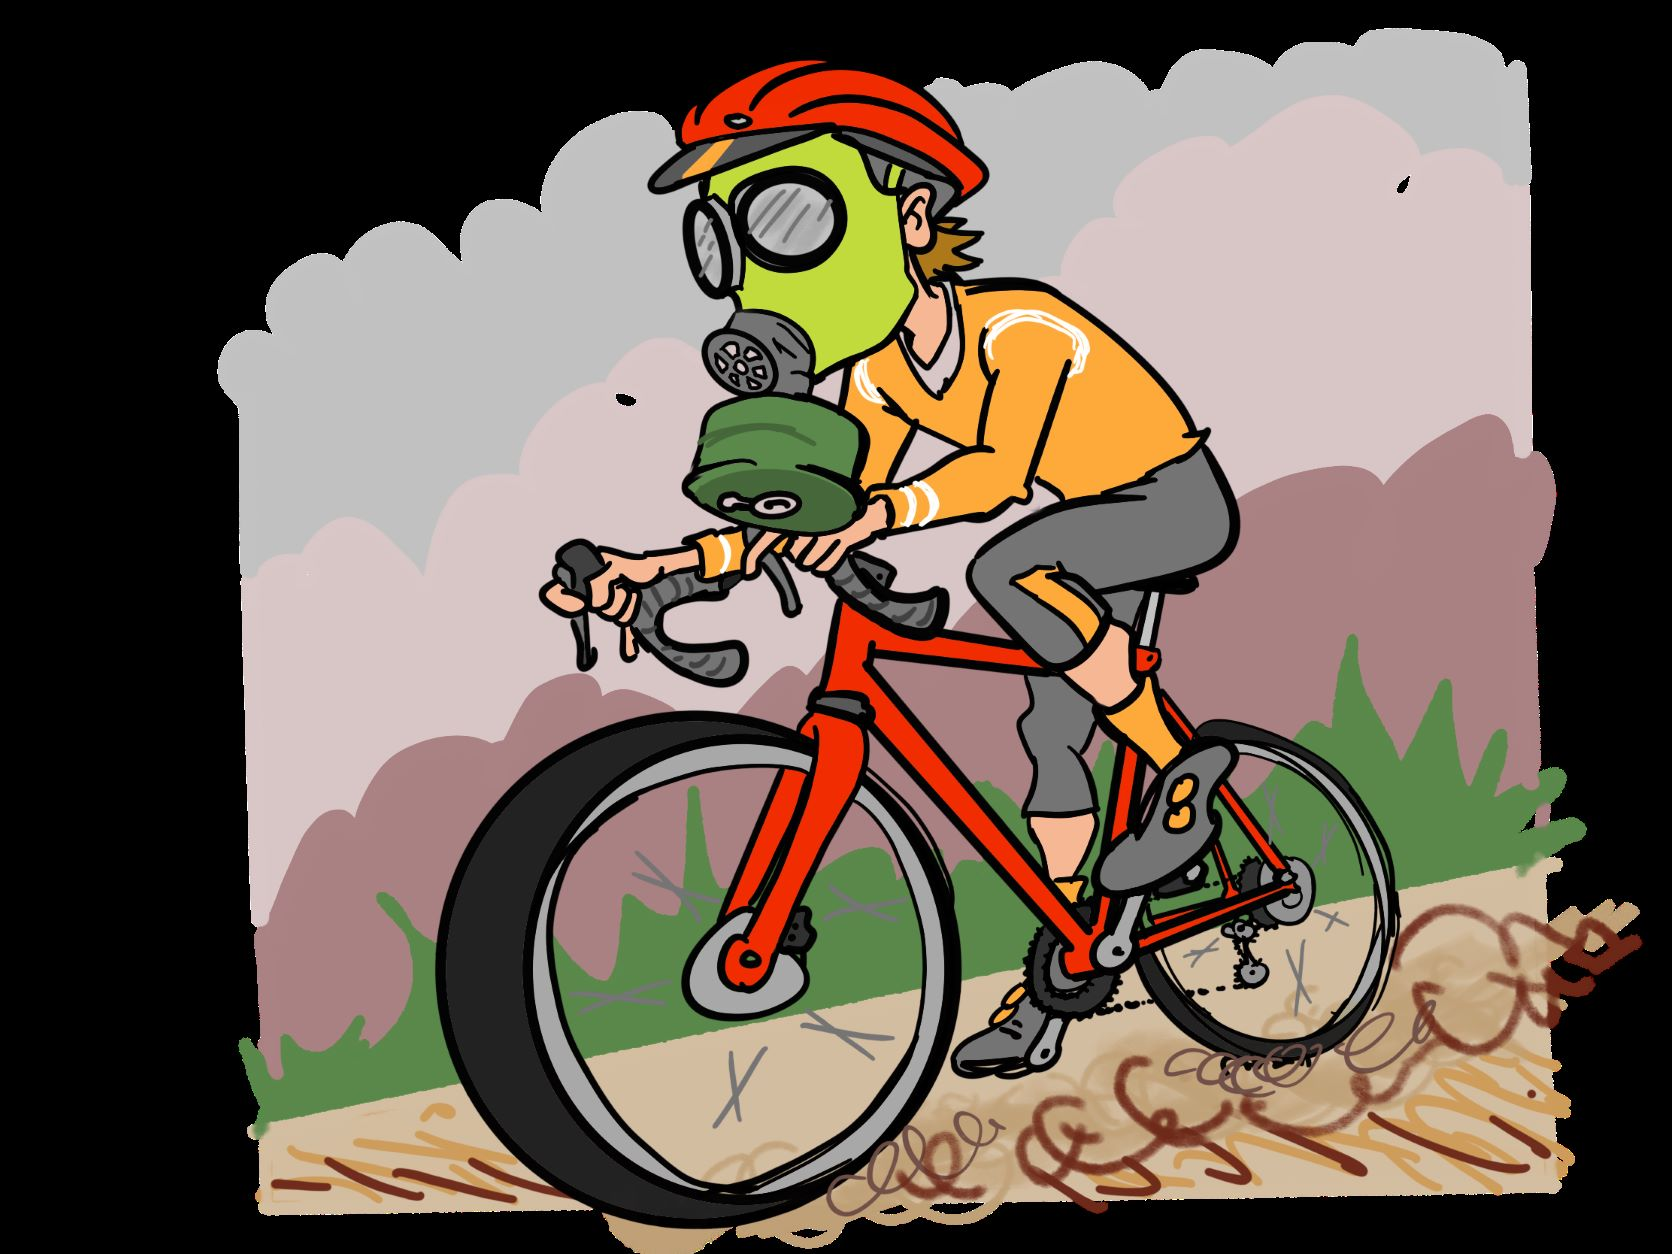 Illustration of a cyclist riding with a gas mask on his face to protect from wildfire smoke.